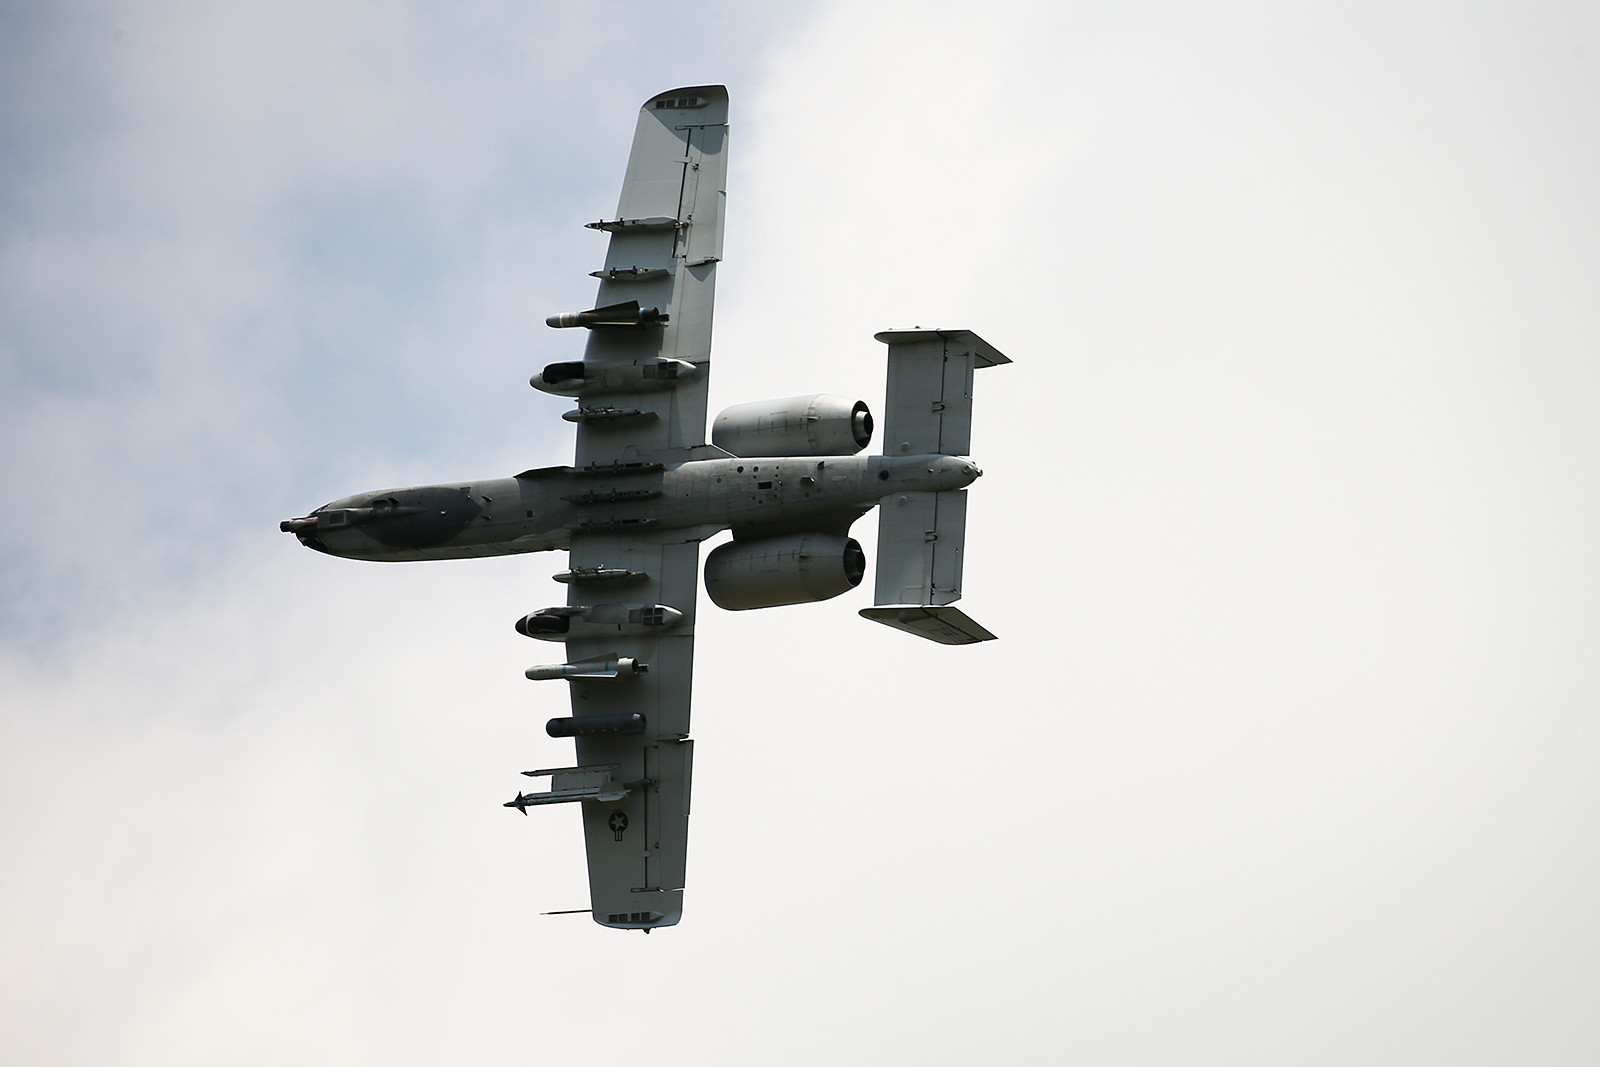 And finally, to all our military personnel around the world, thanks for all you do. A pair of A-10s buzzed over the track on Thursday during press day. We're not sure if they were moto fans or not, but either way, we appreciated the show.